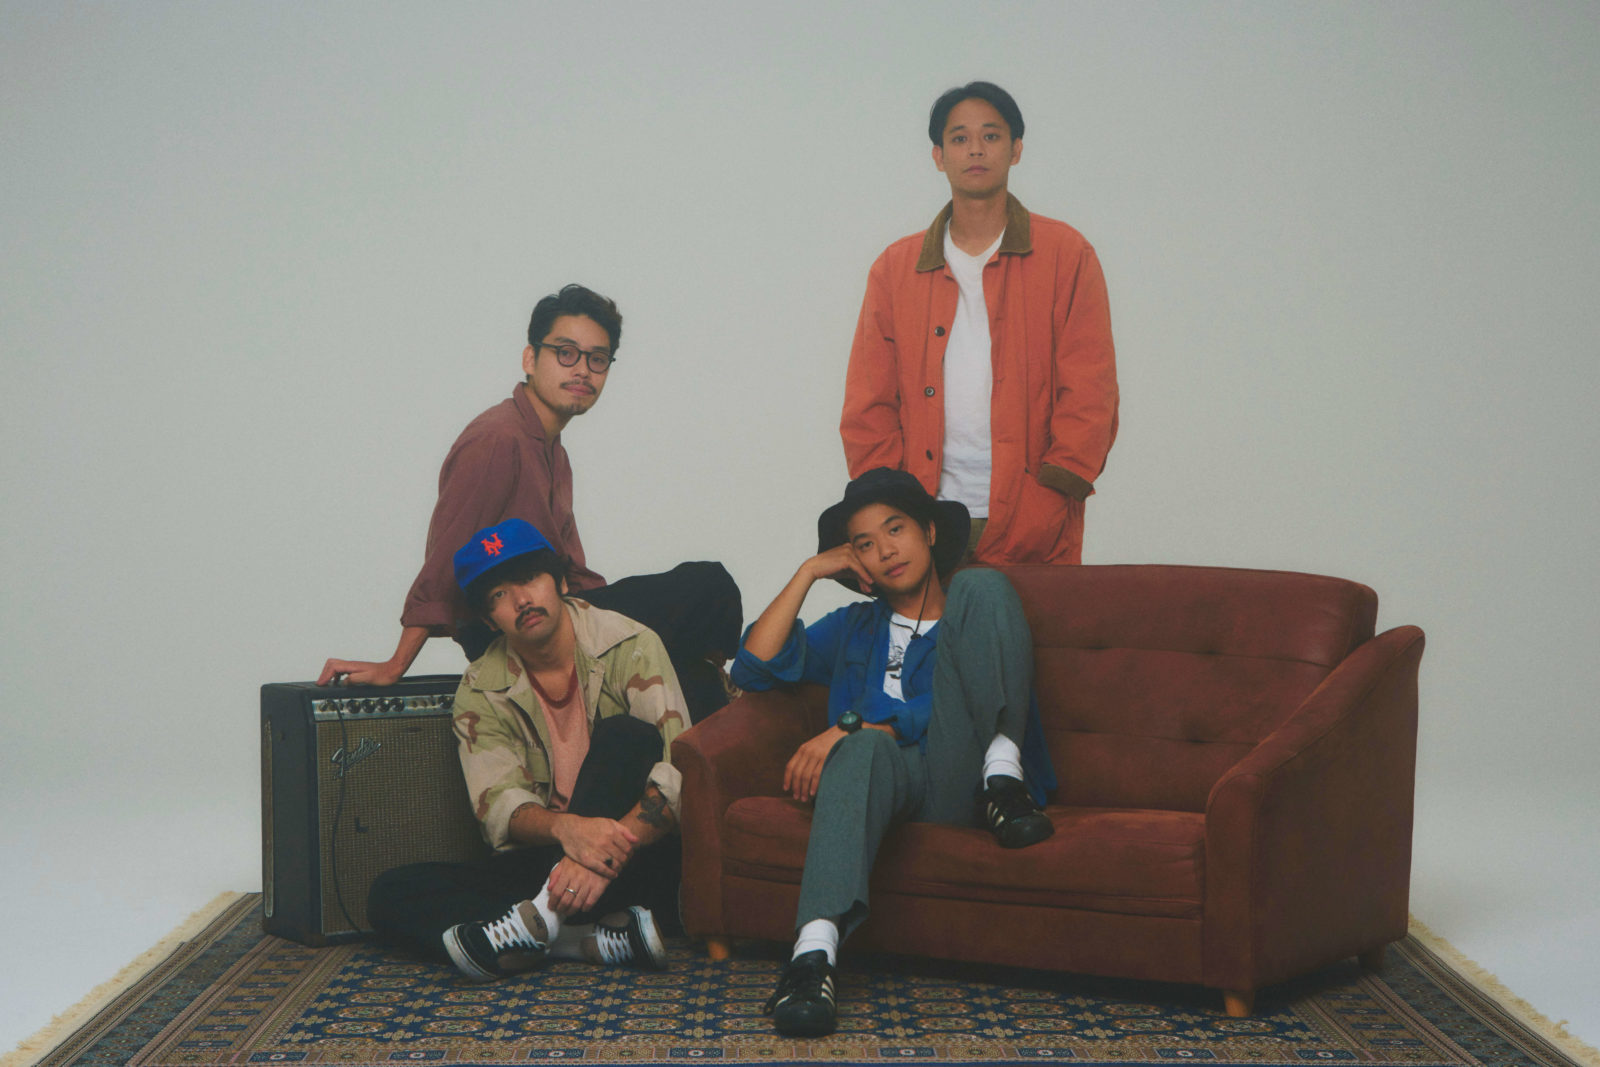 Yogee New Waves「to the moon」本日先行配信スタートサムネイル画像